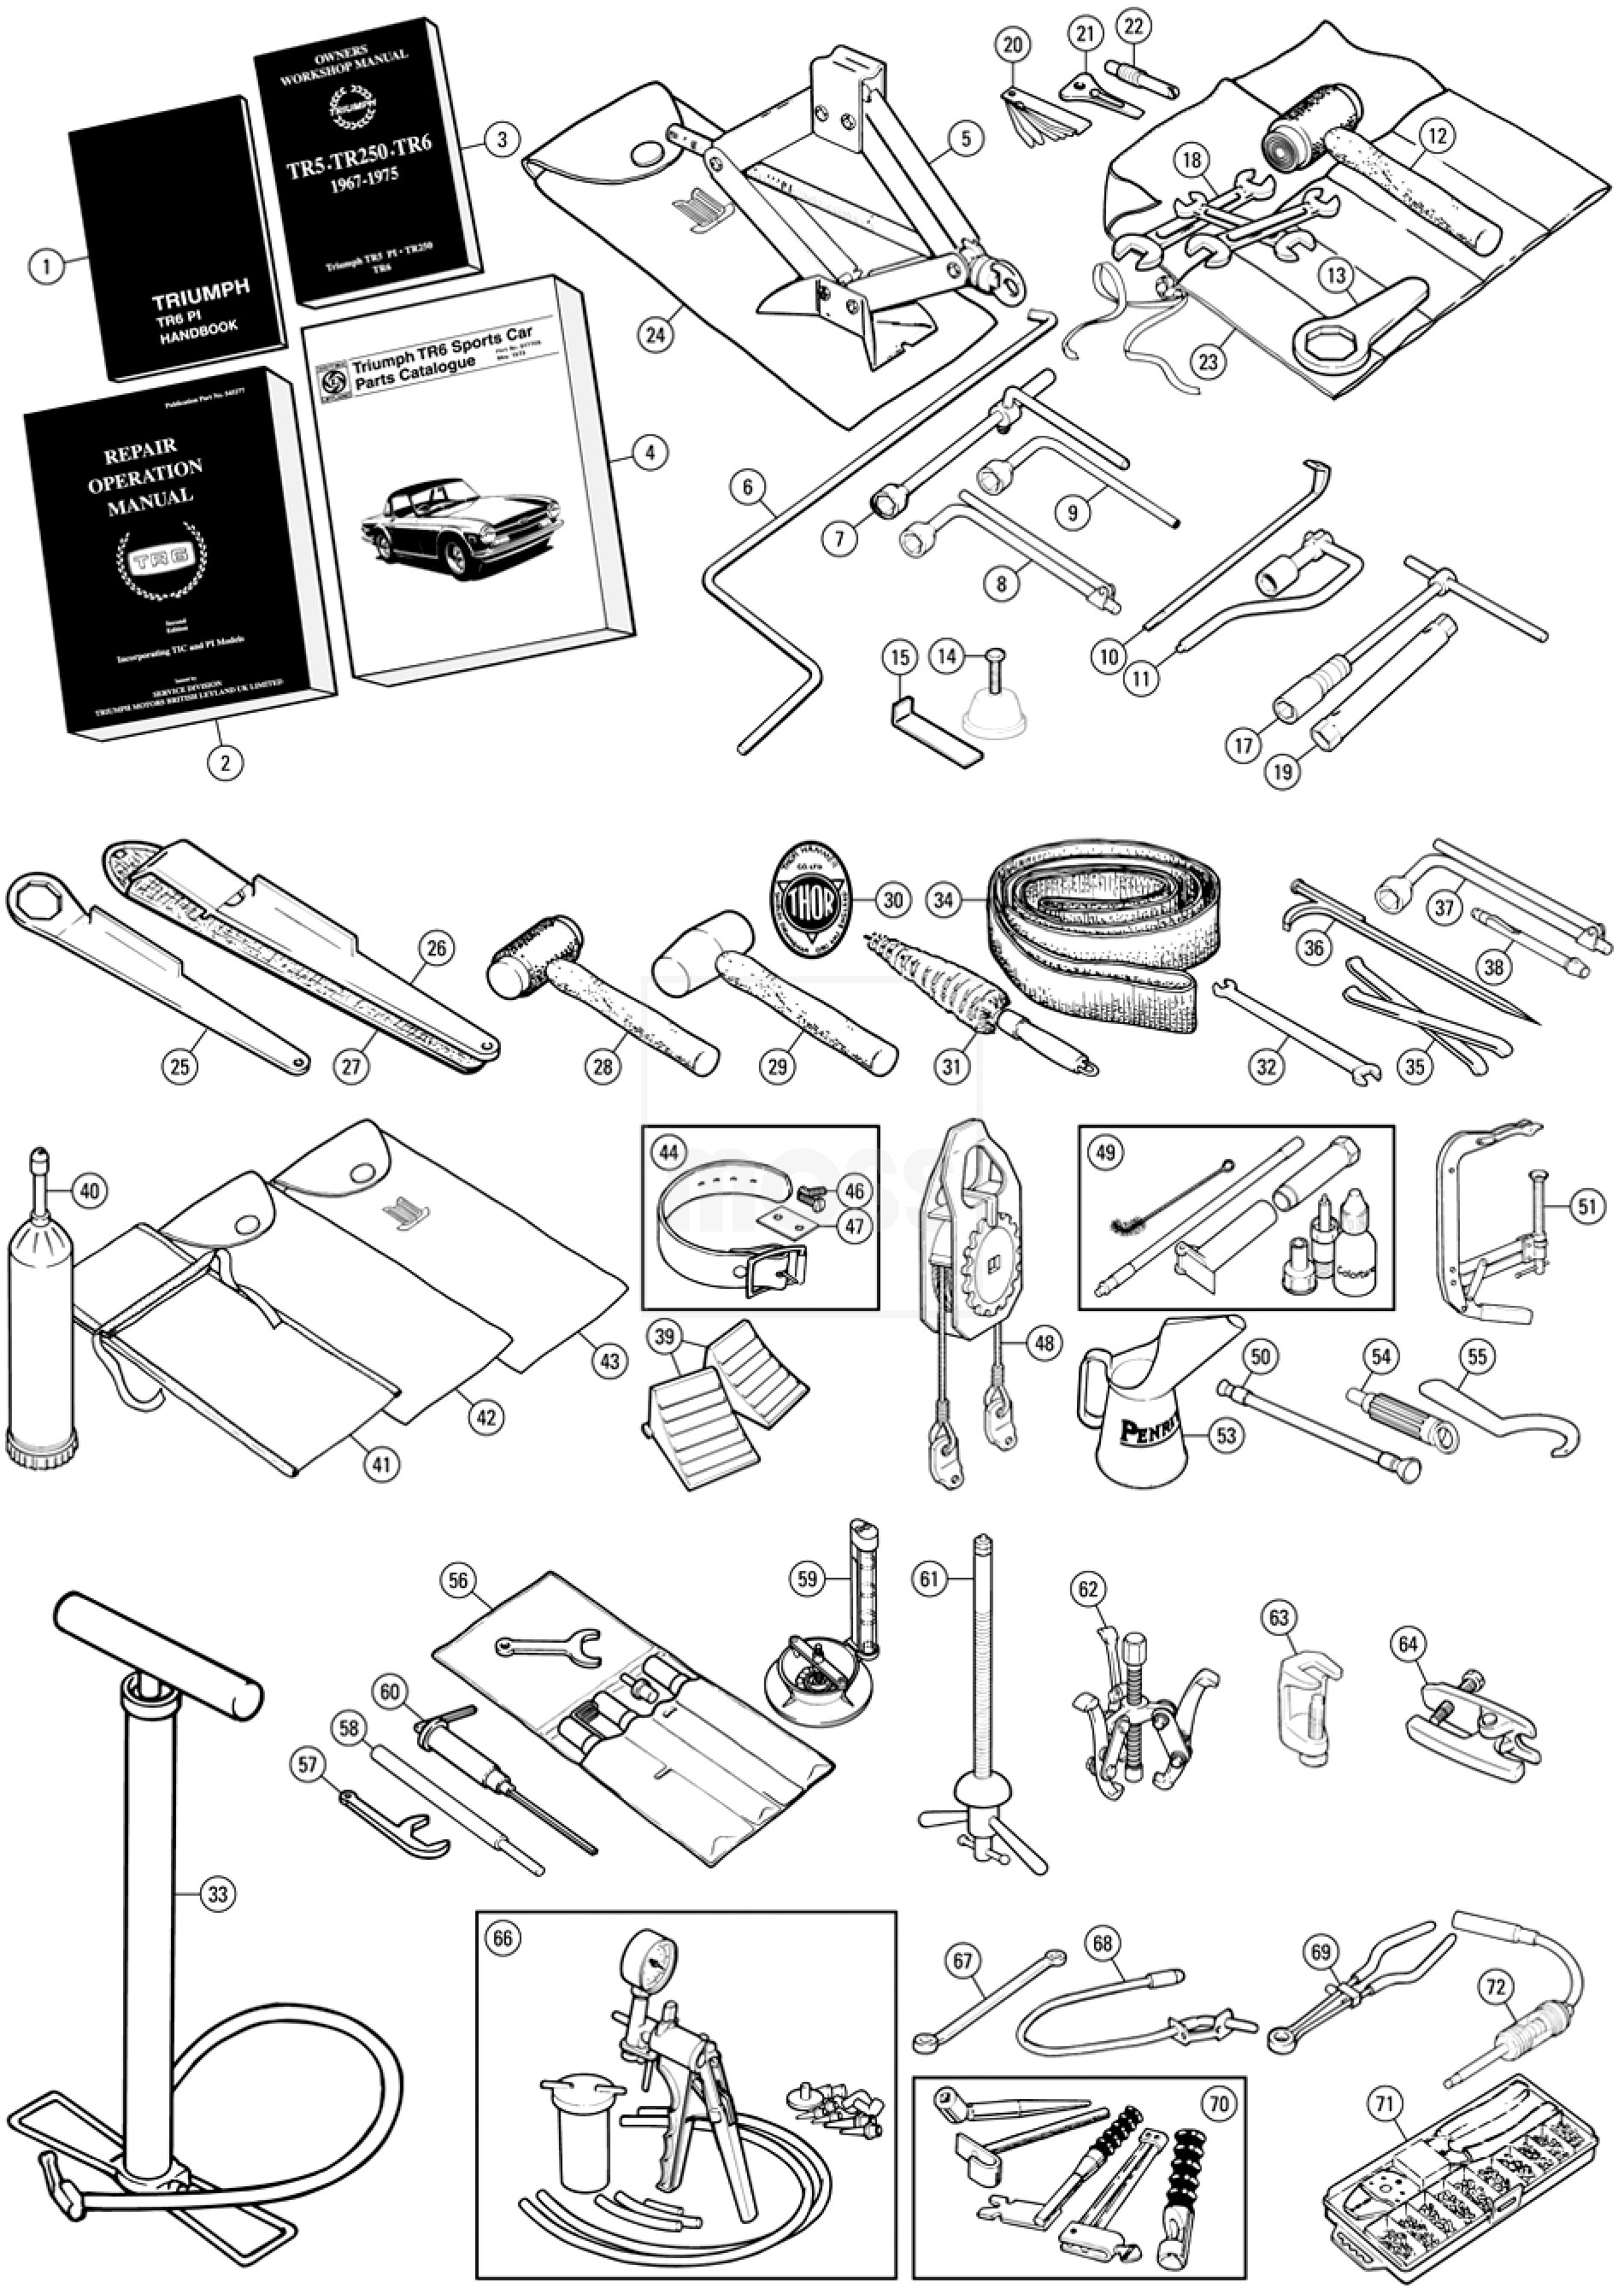 Triumph Vitesse Wiring Diagram Triumph Chopper Wiring For